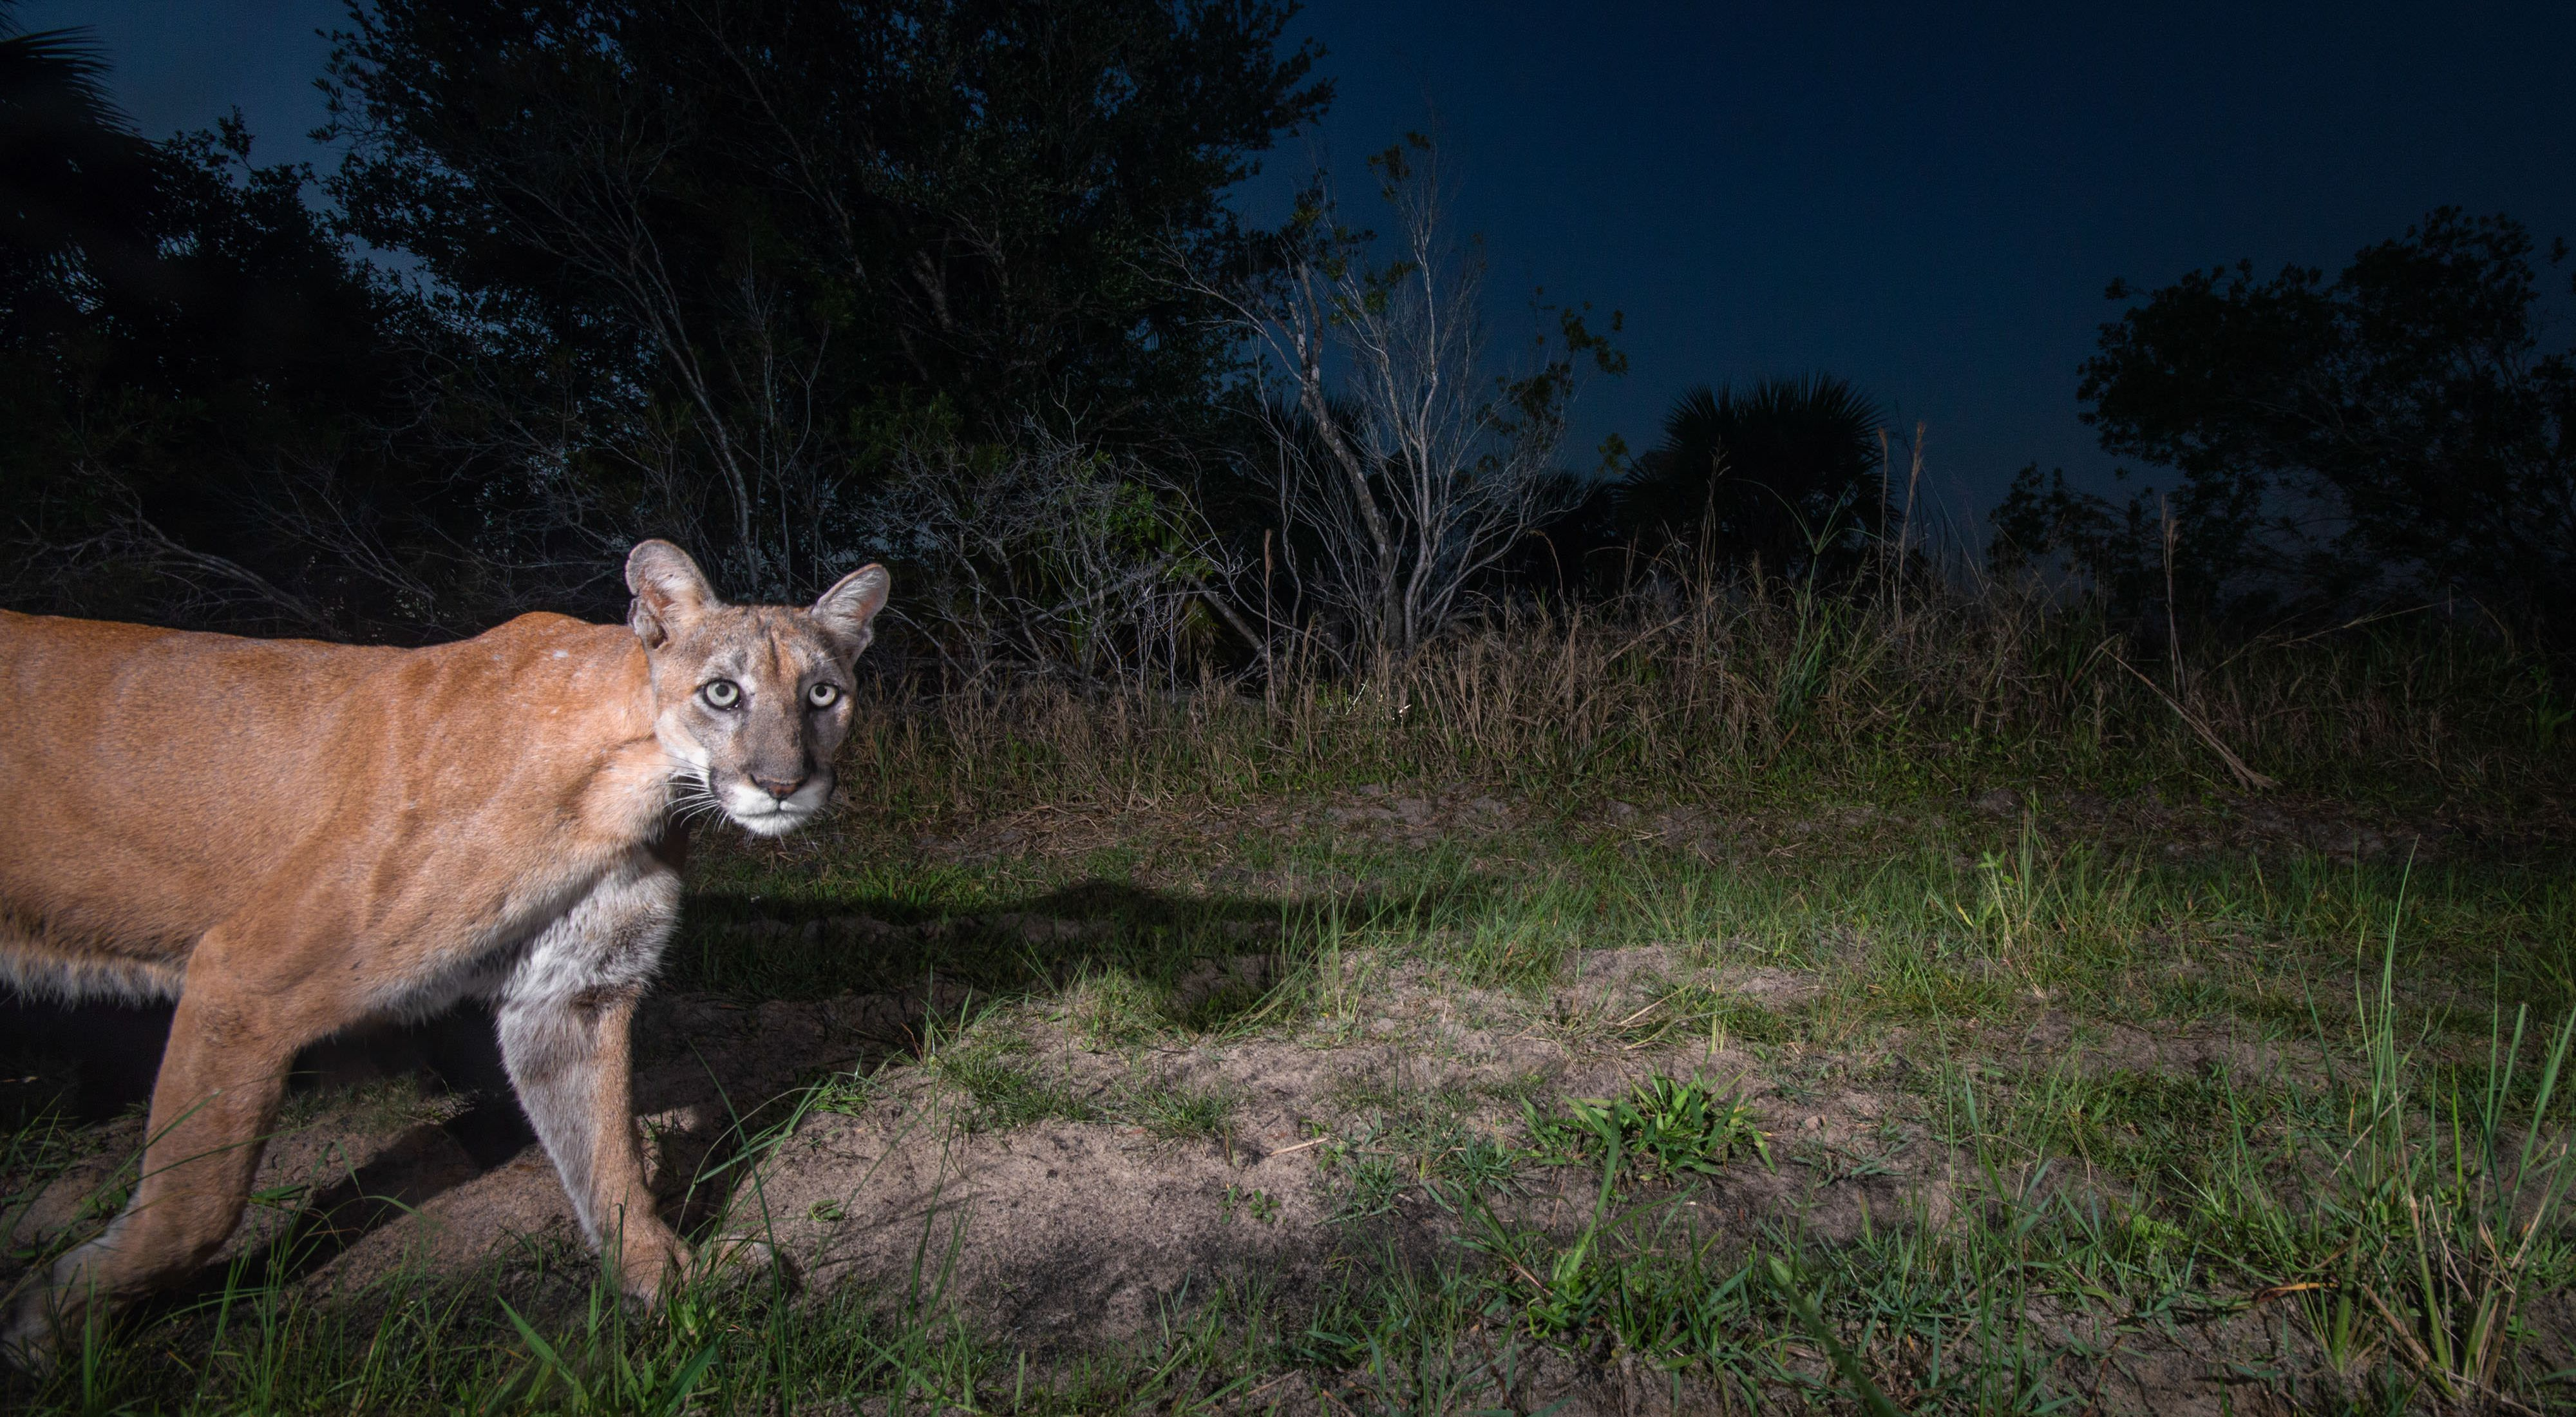 Camera-trap photo of a Florida panther walking in the forest.